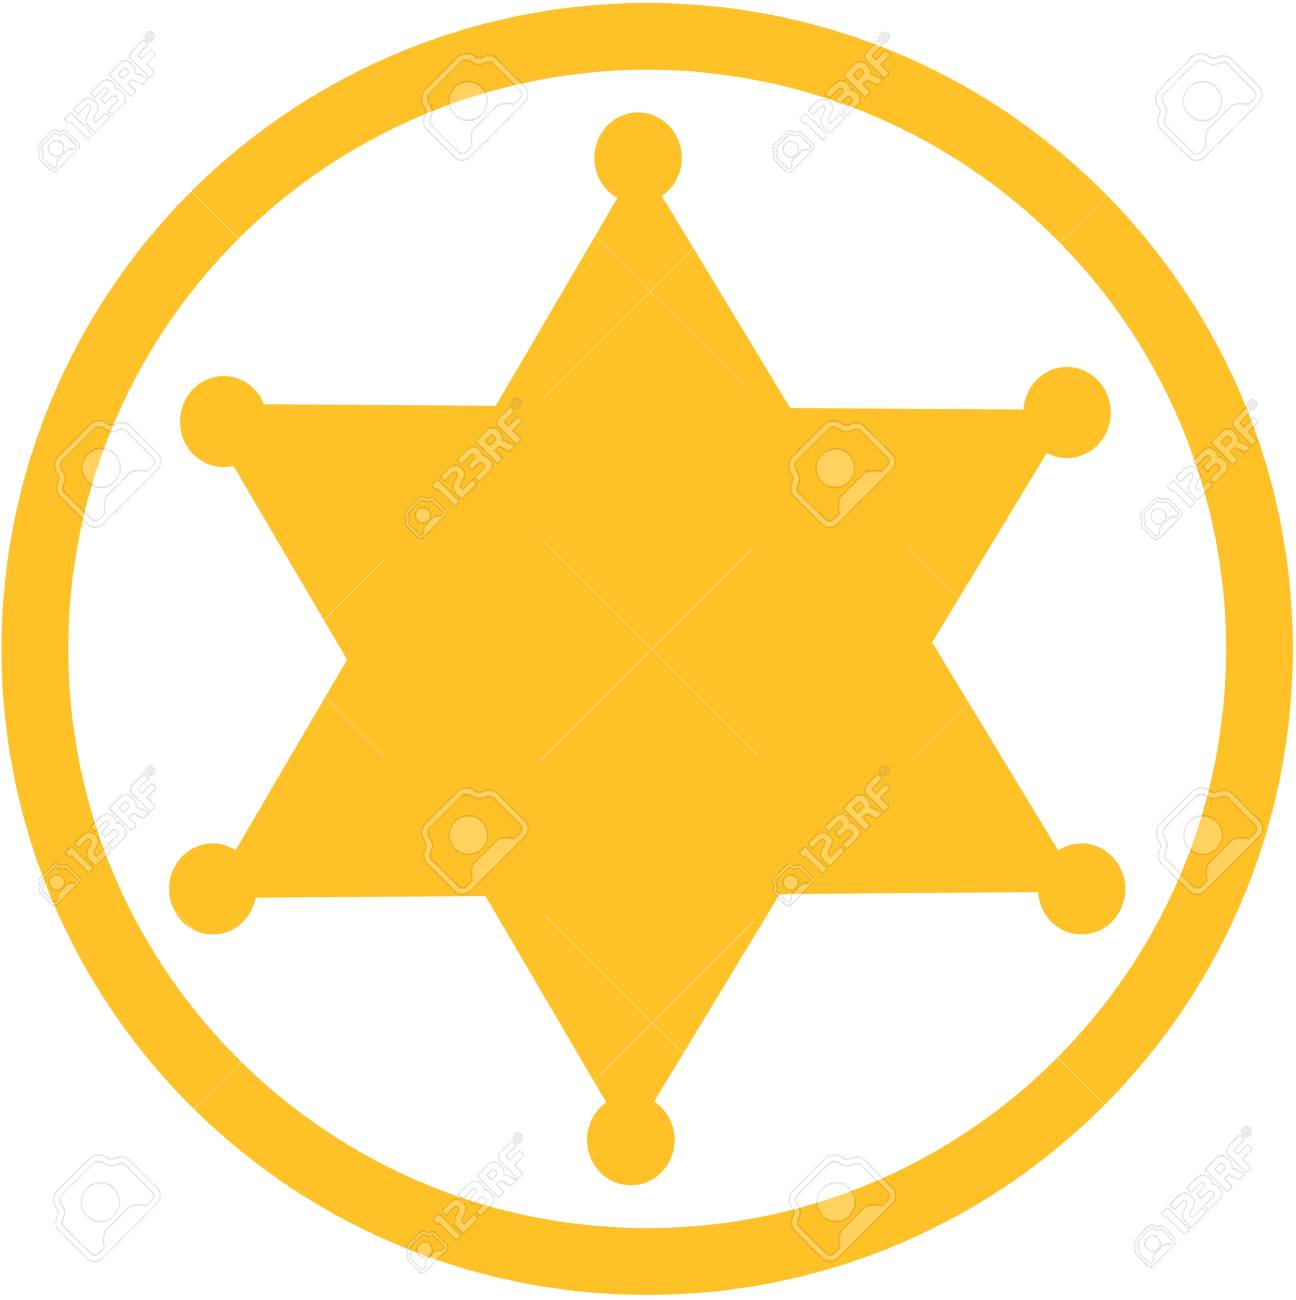 sheriff star icon royalty free cliparts vectors and stock rh 123rf com sheriff badge vector free deputy sheriff badge vector